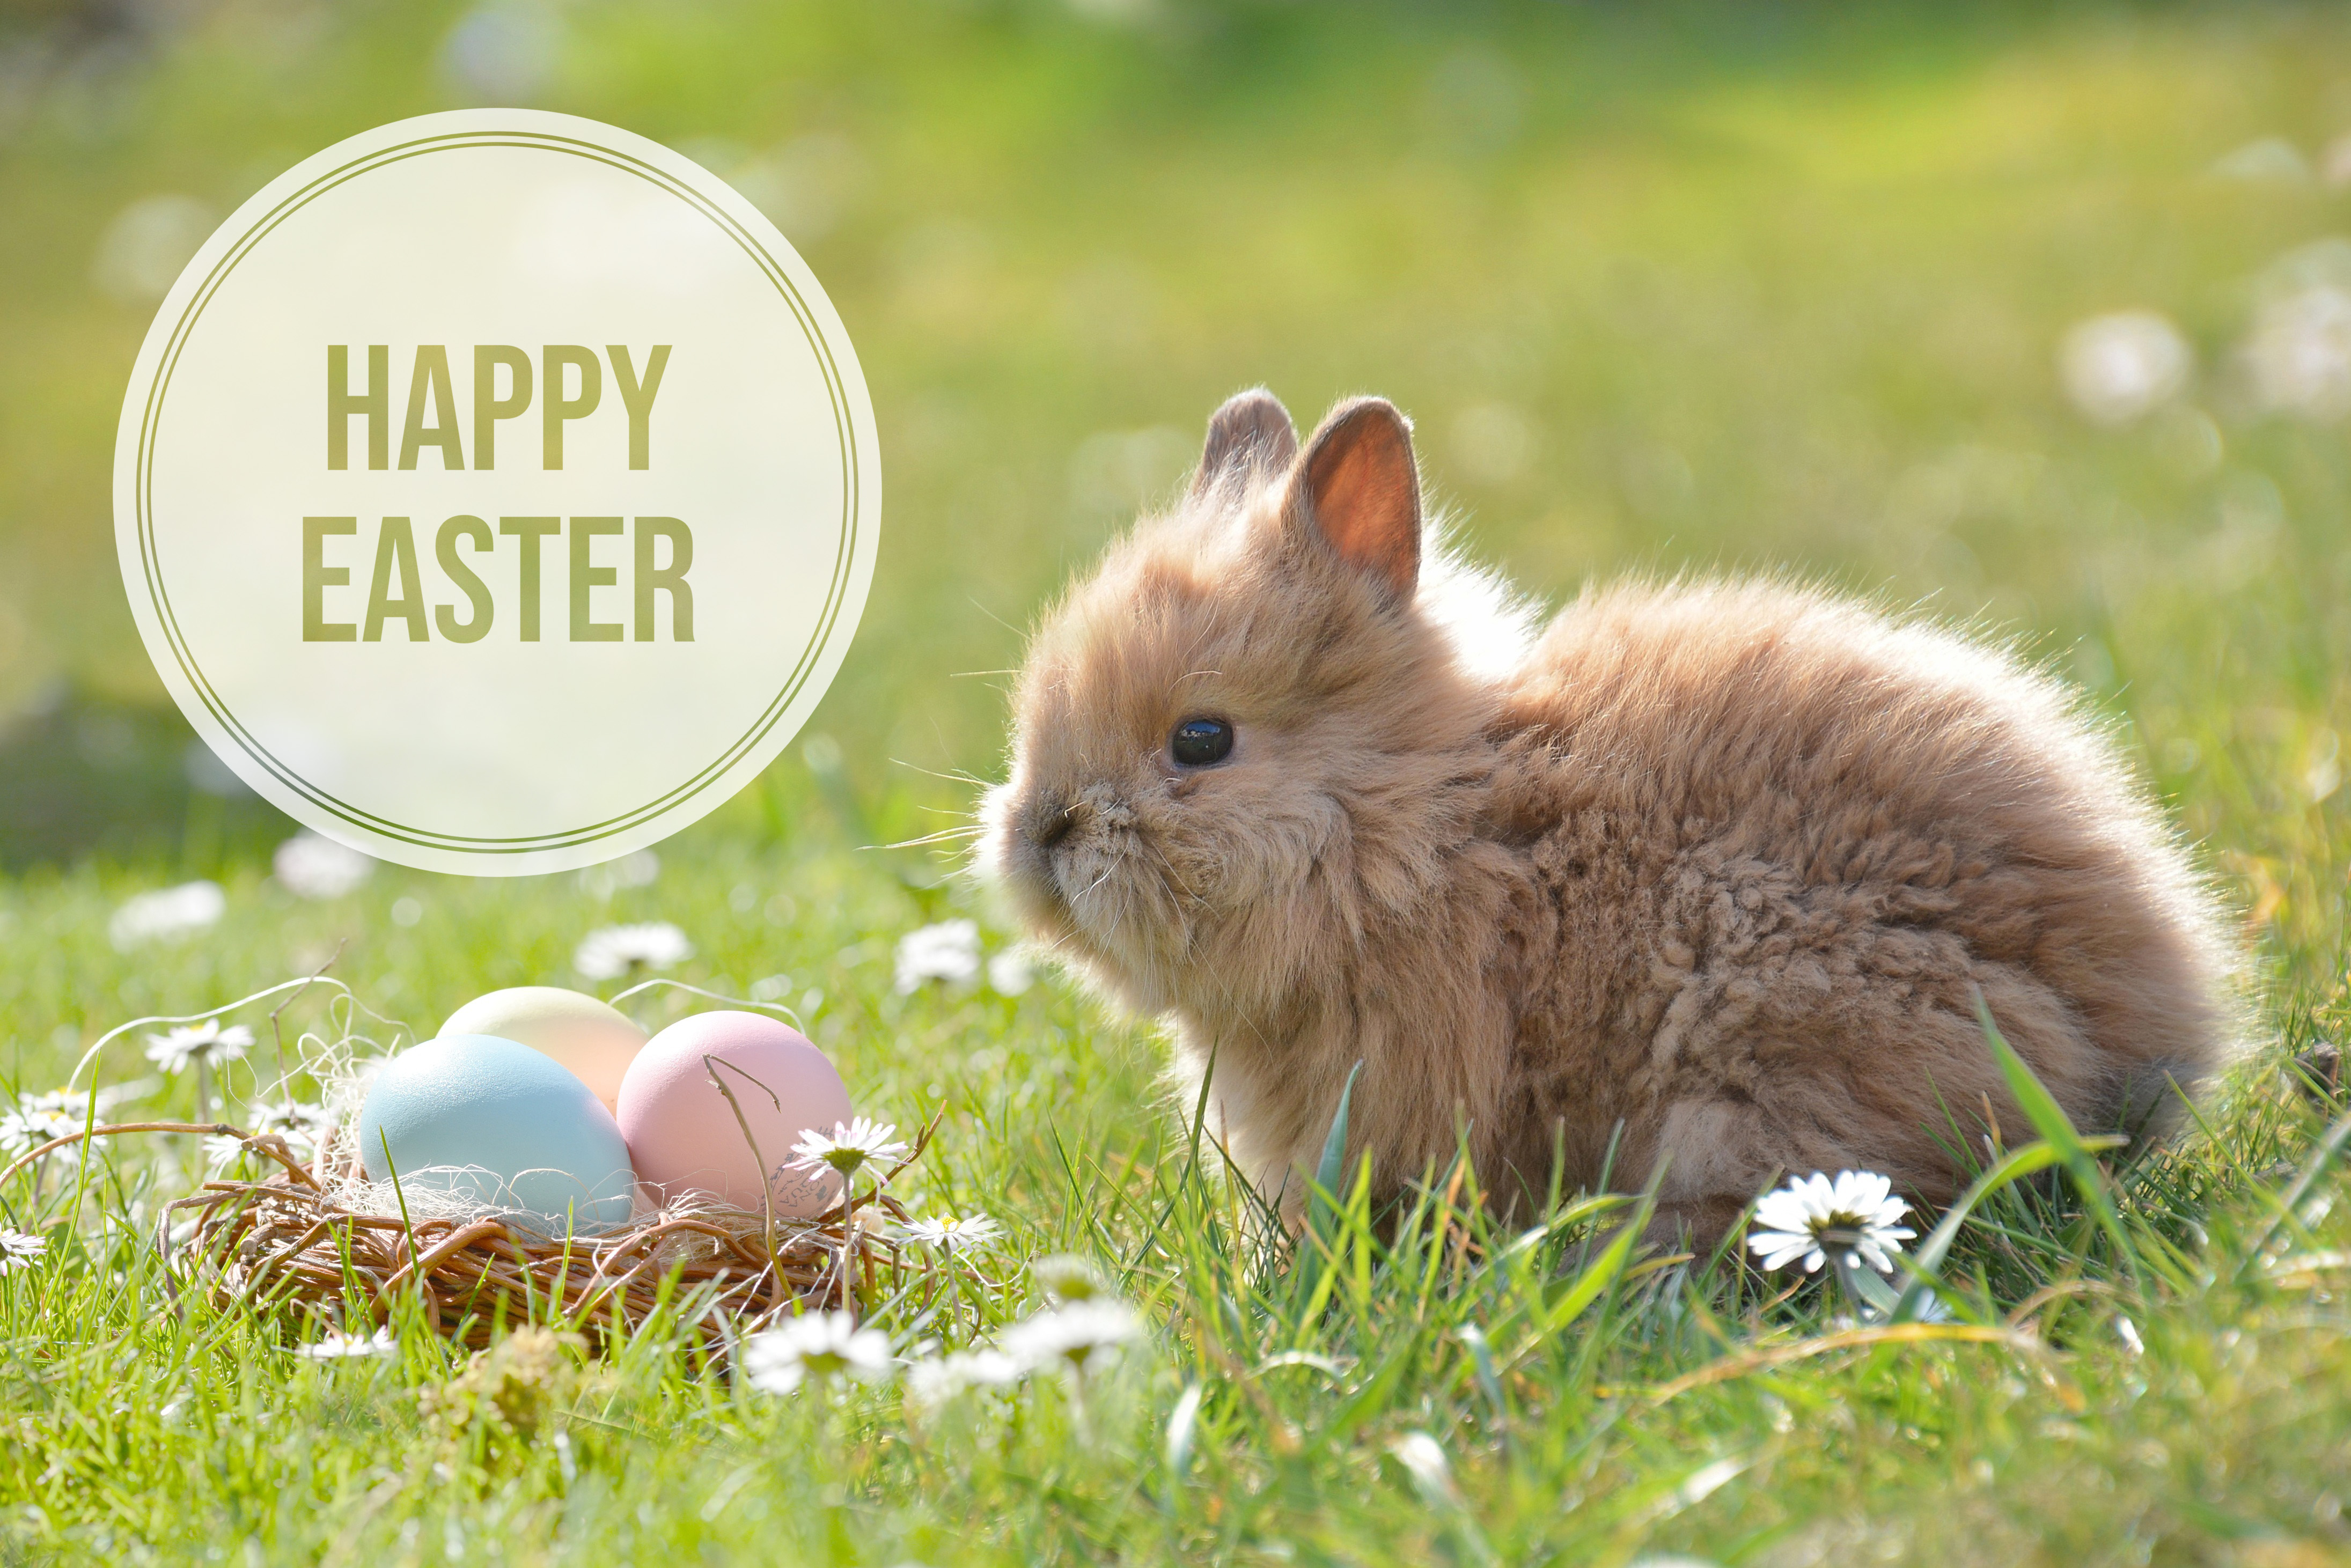 cute easter bunny after adding alana lee photography easter overlay in photoshop